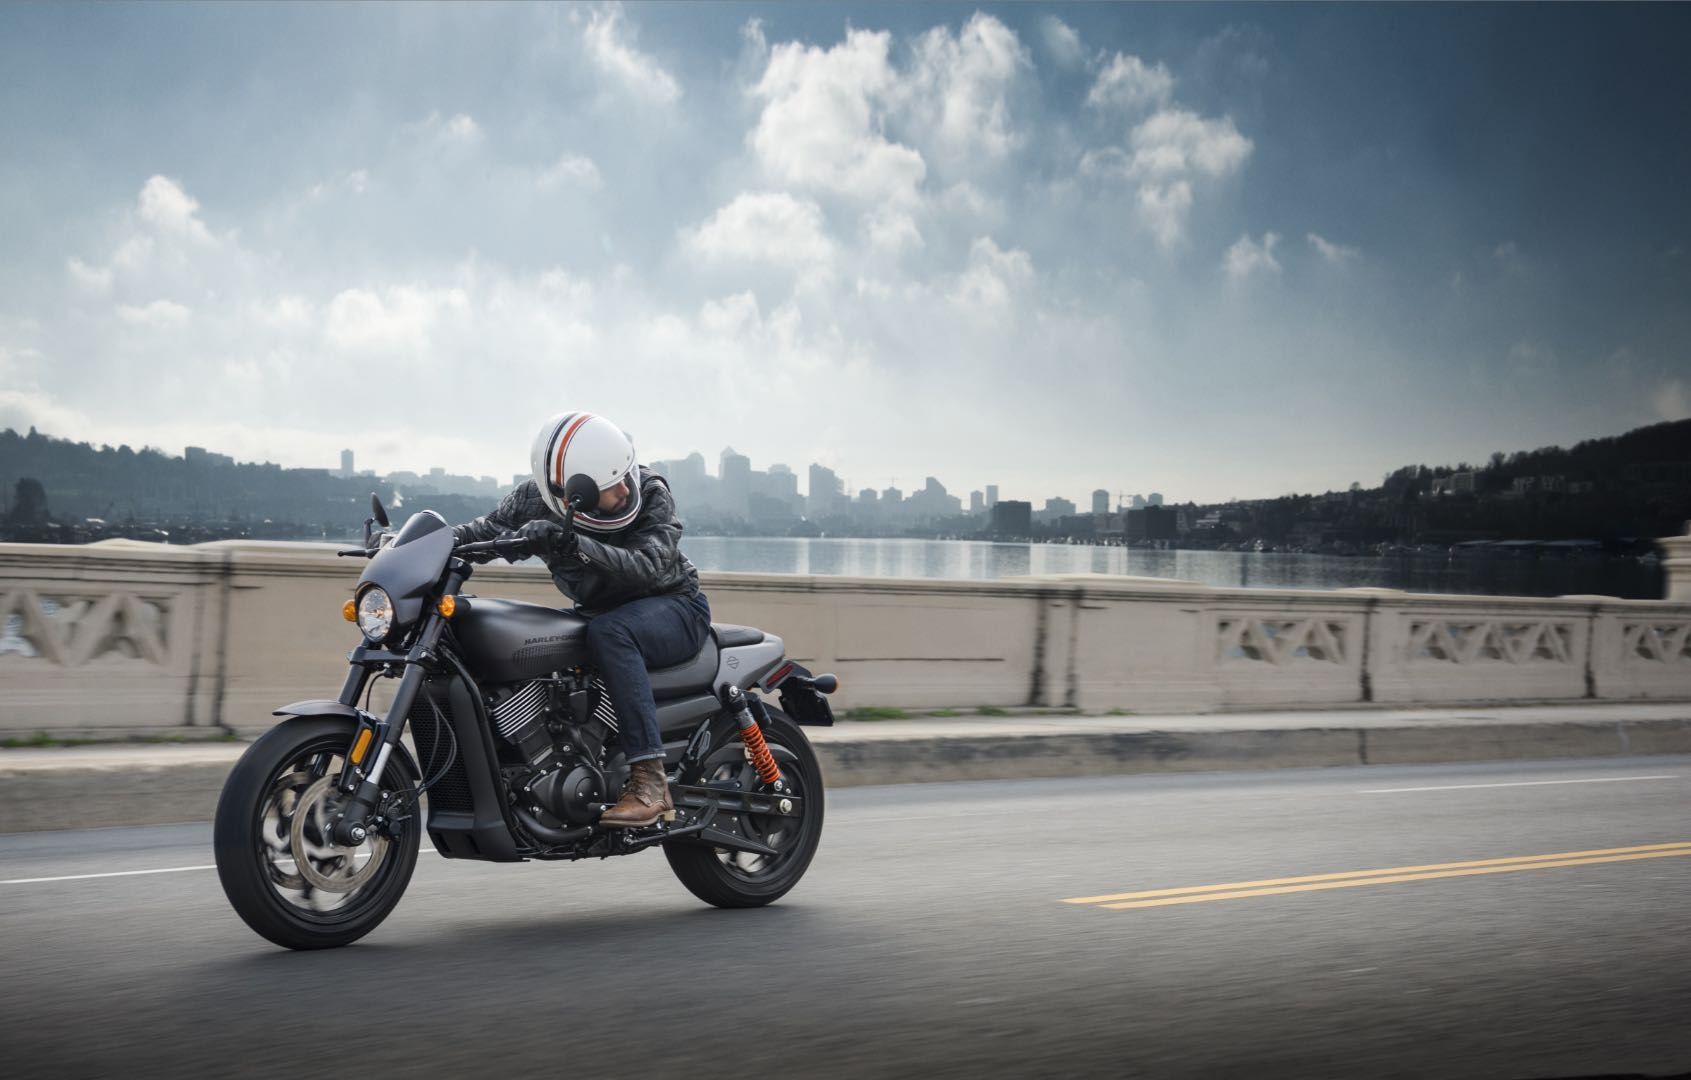 2017 Harley-Davidson Street Rod Unveiled | 13 Fast Facts (Video)